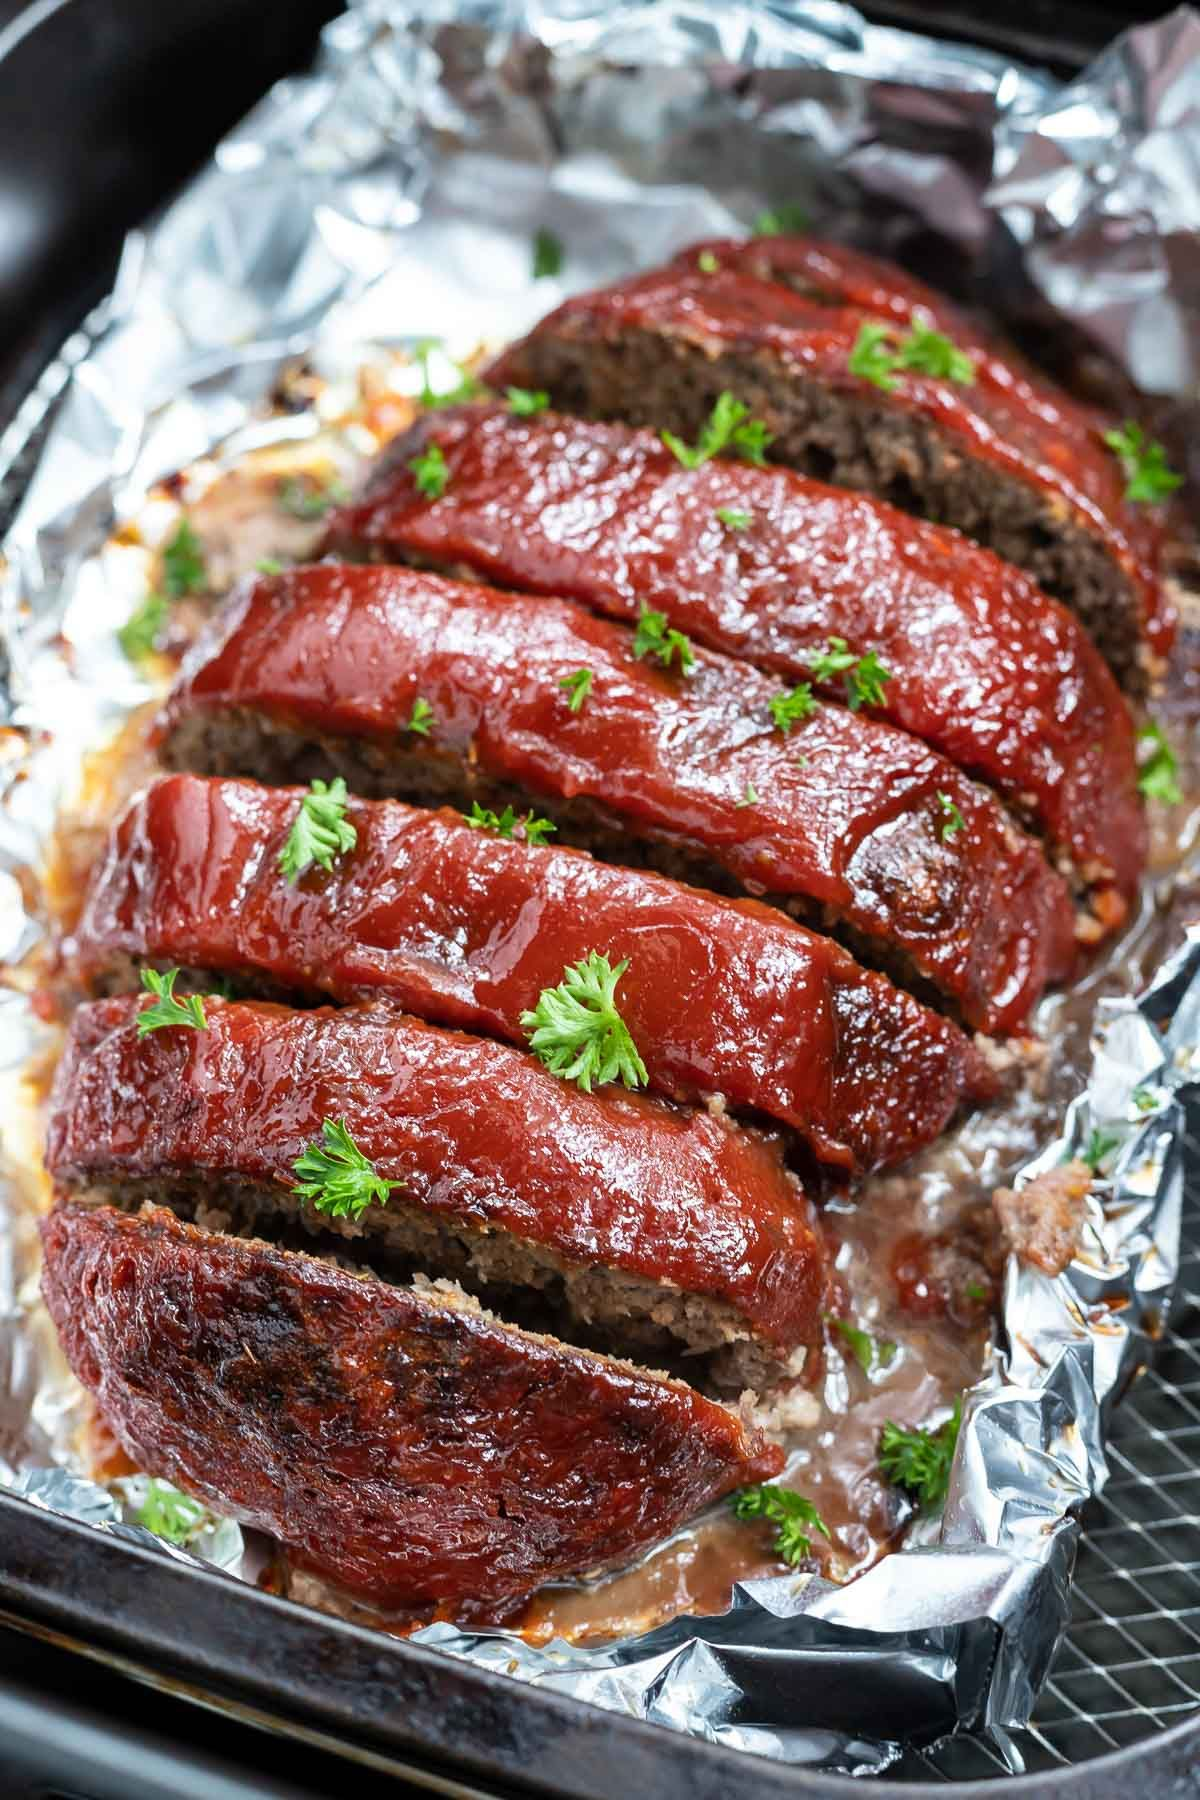 Meatloaf in an Air Fryer is an easy dinner for weeknights